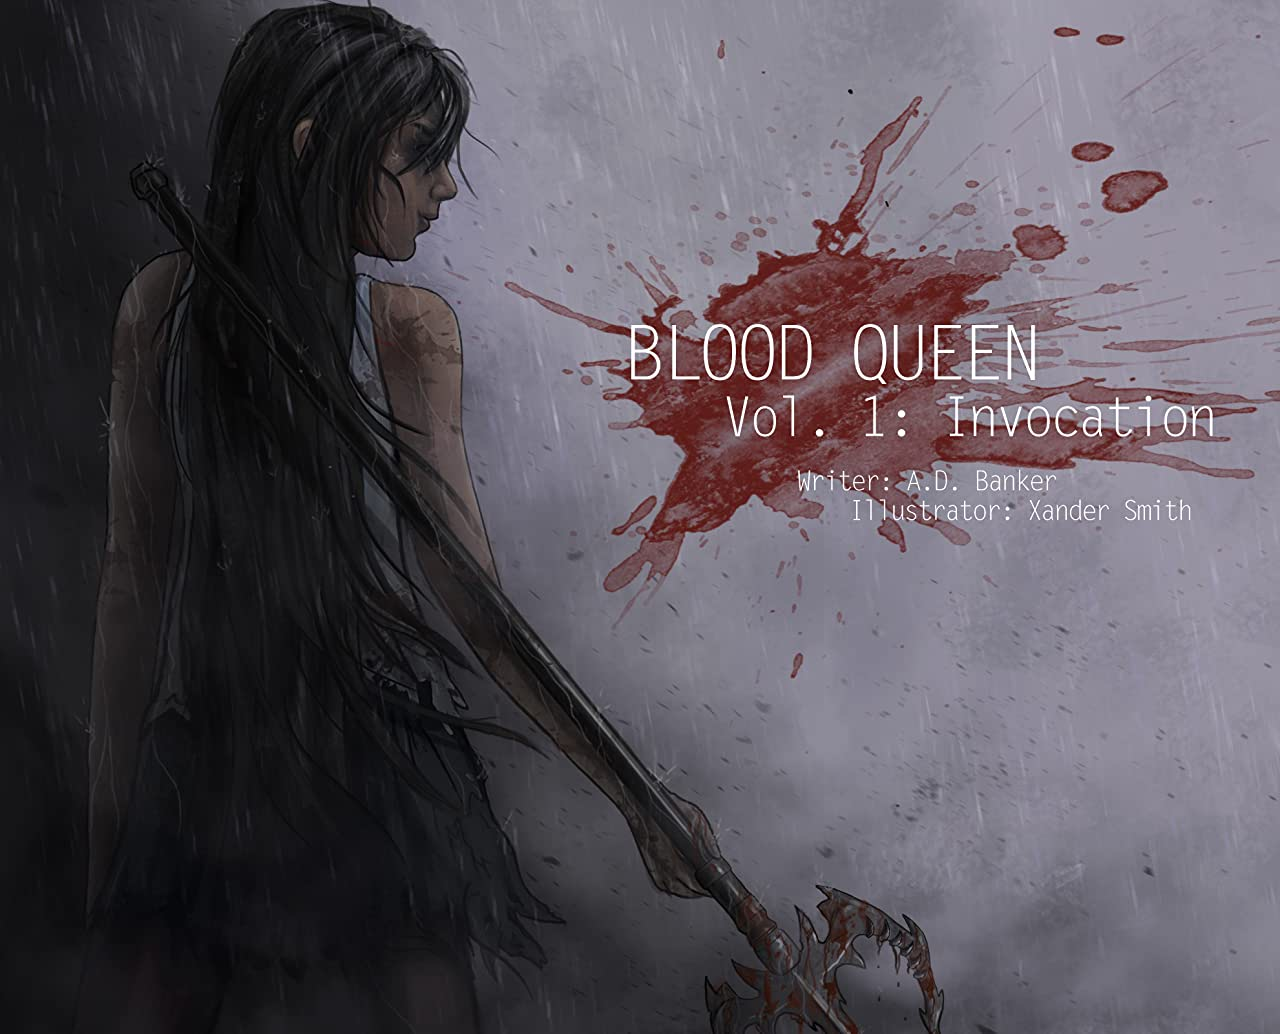 Blood Queen Vol. 1: Invocation